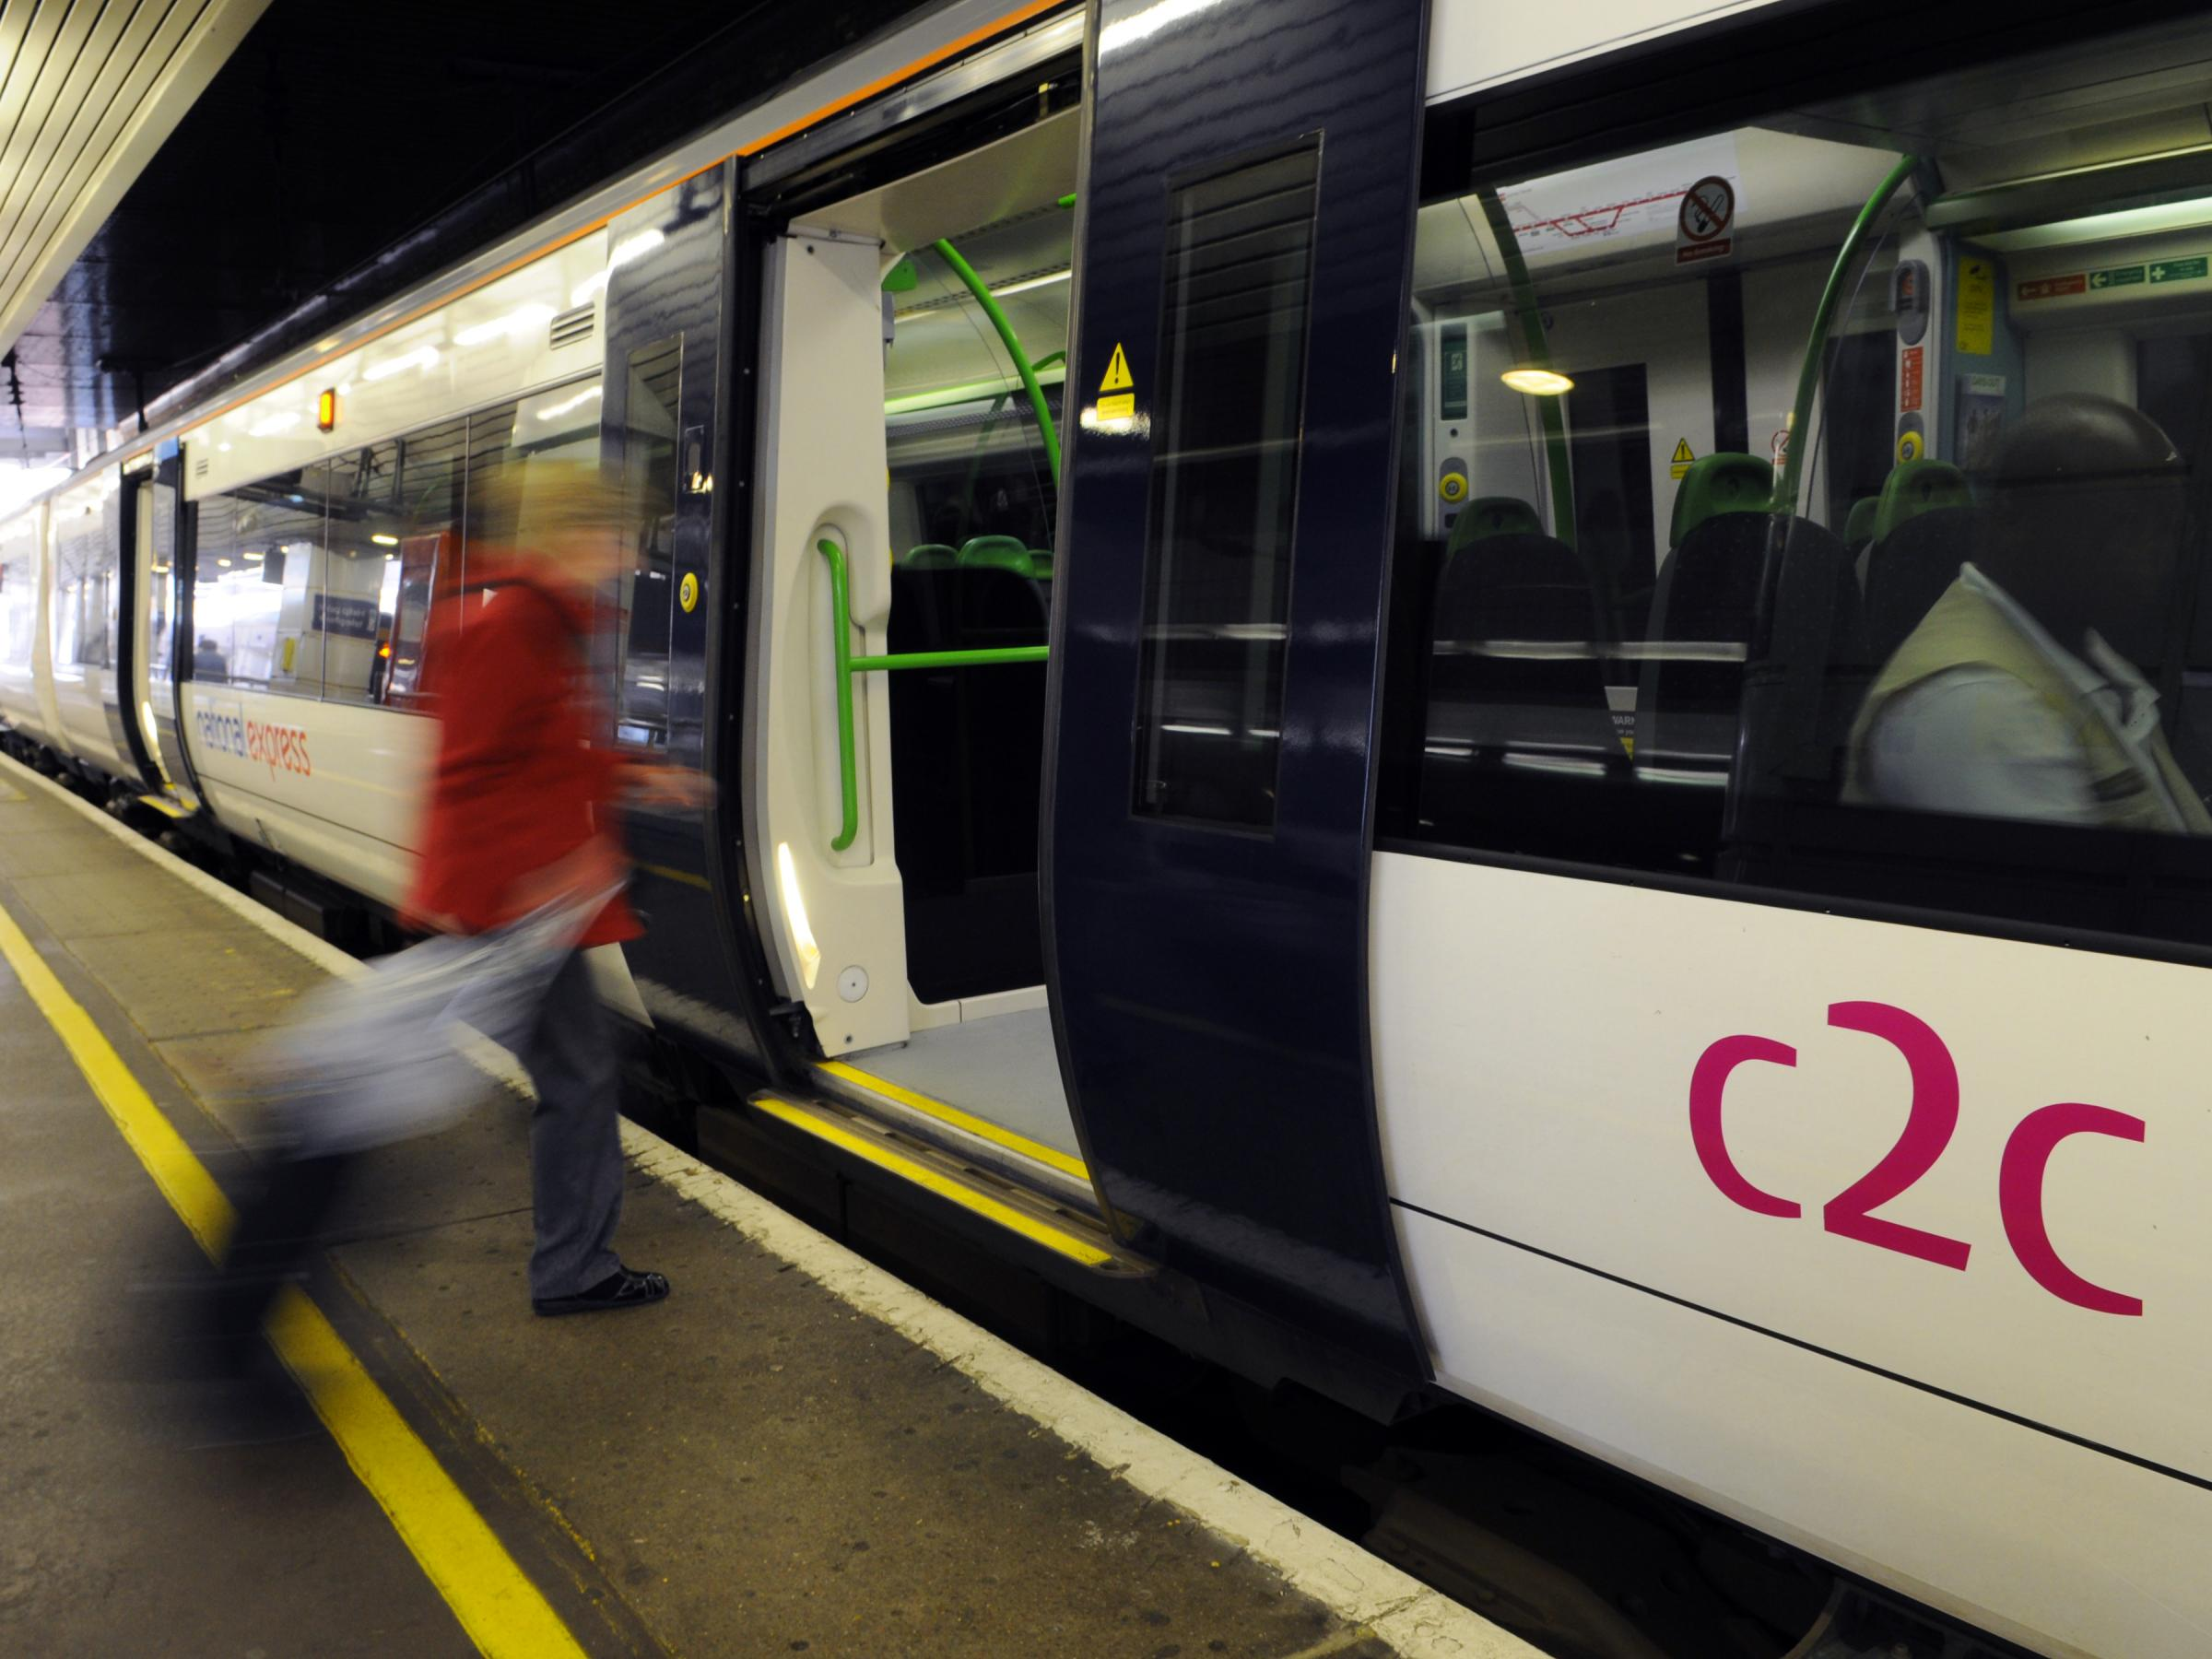 c2c will lay on extra trains if planned tube strike goes ahead